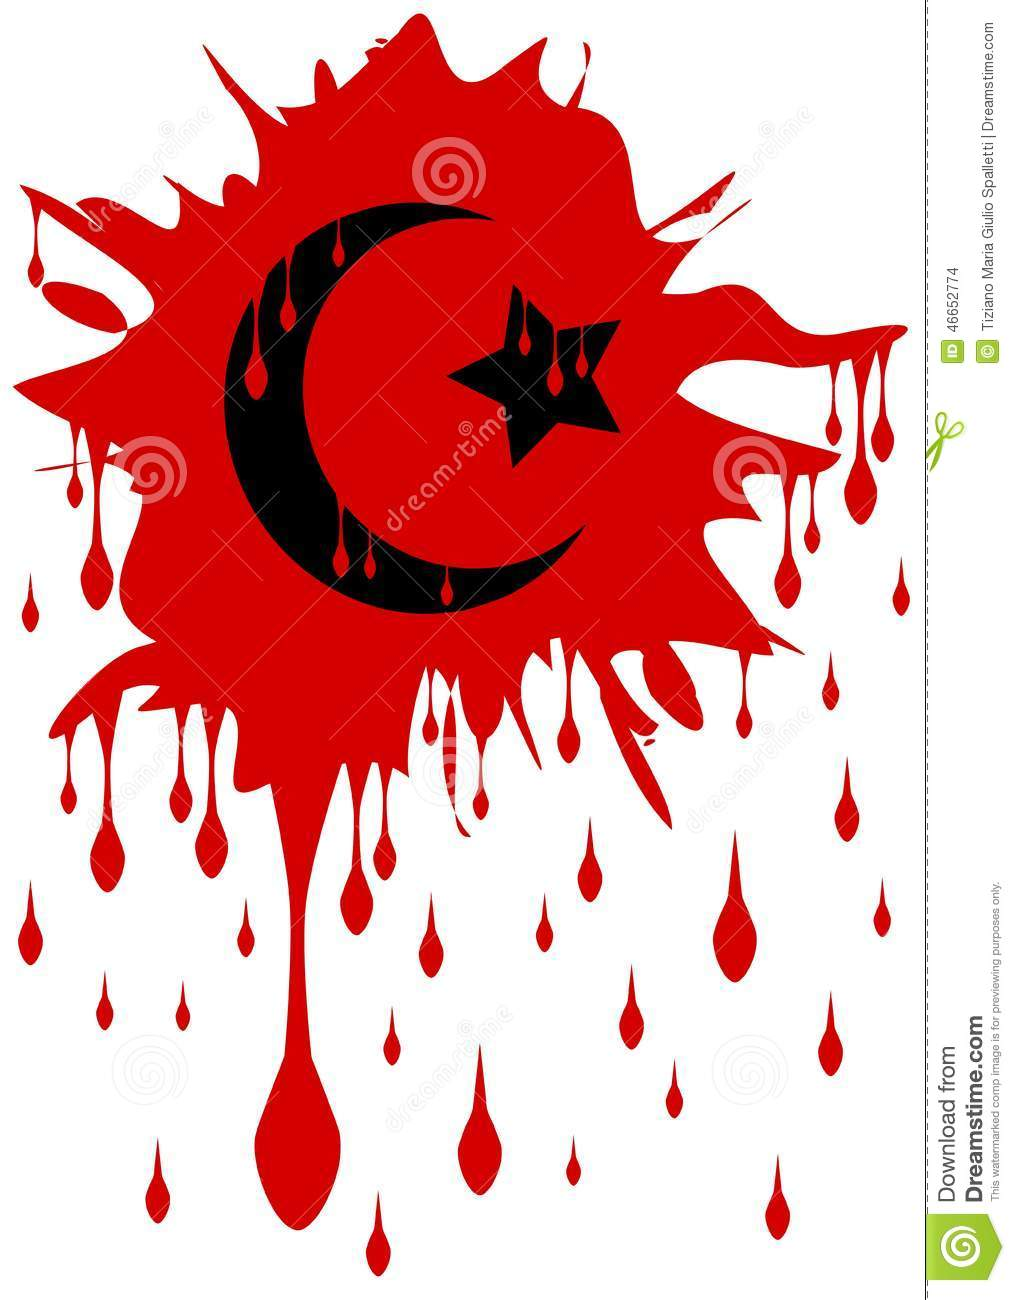 Bloody symbol of islam isolated stock vector illustration of bloody symbol of islam isolated buycottarizona Gallery